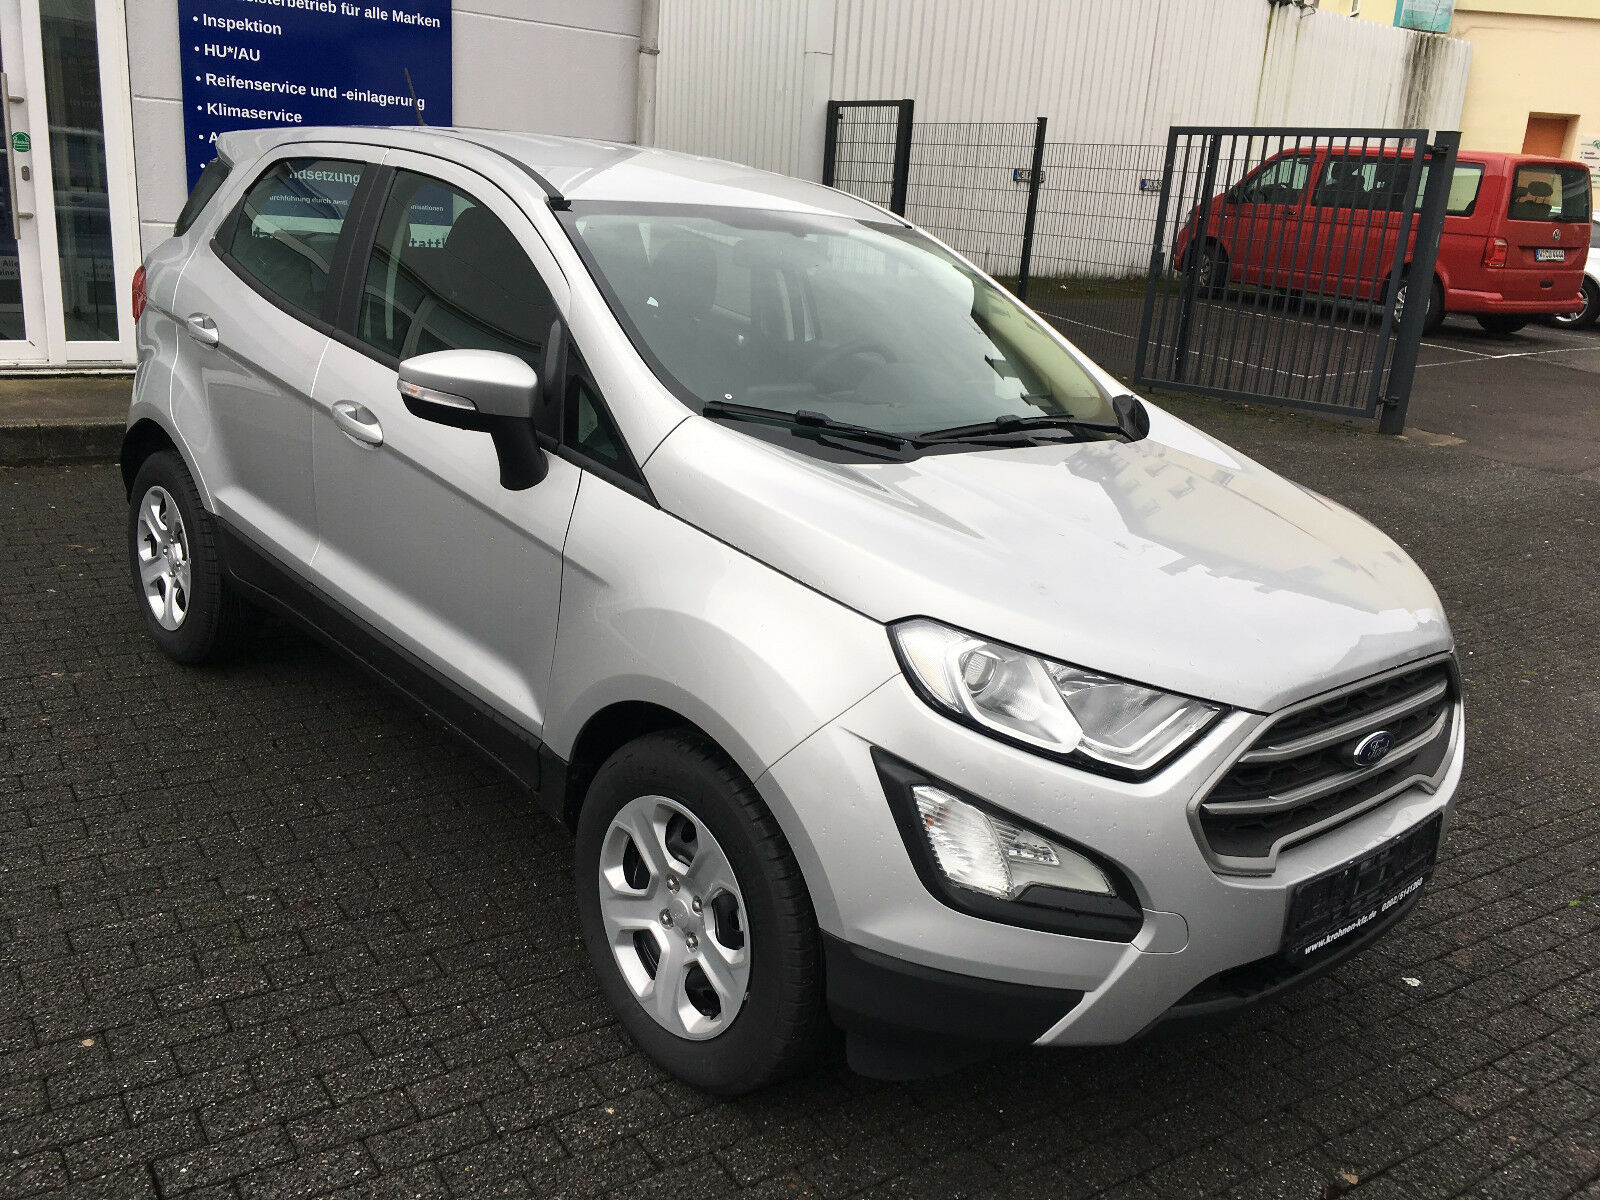 FORD ECOSPORT 1.0 EcoBoost*FACELIFT* Winterpaket*PDC